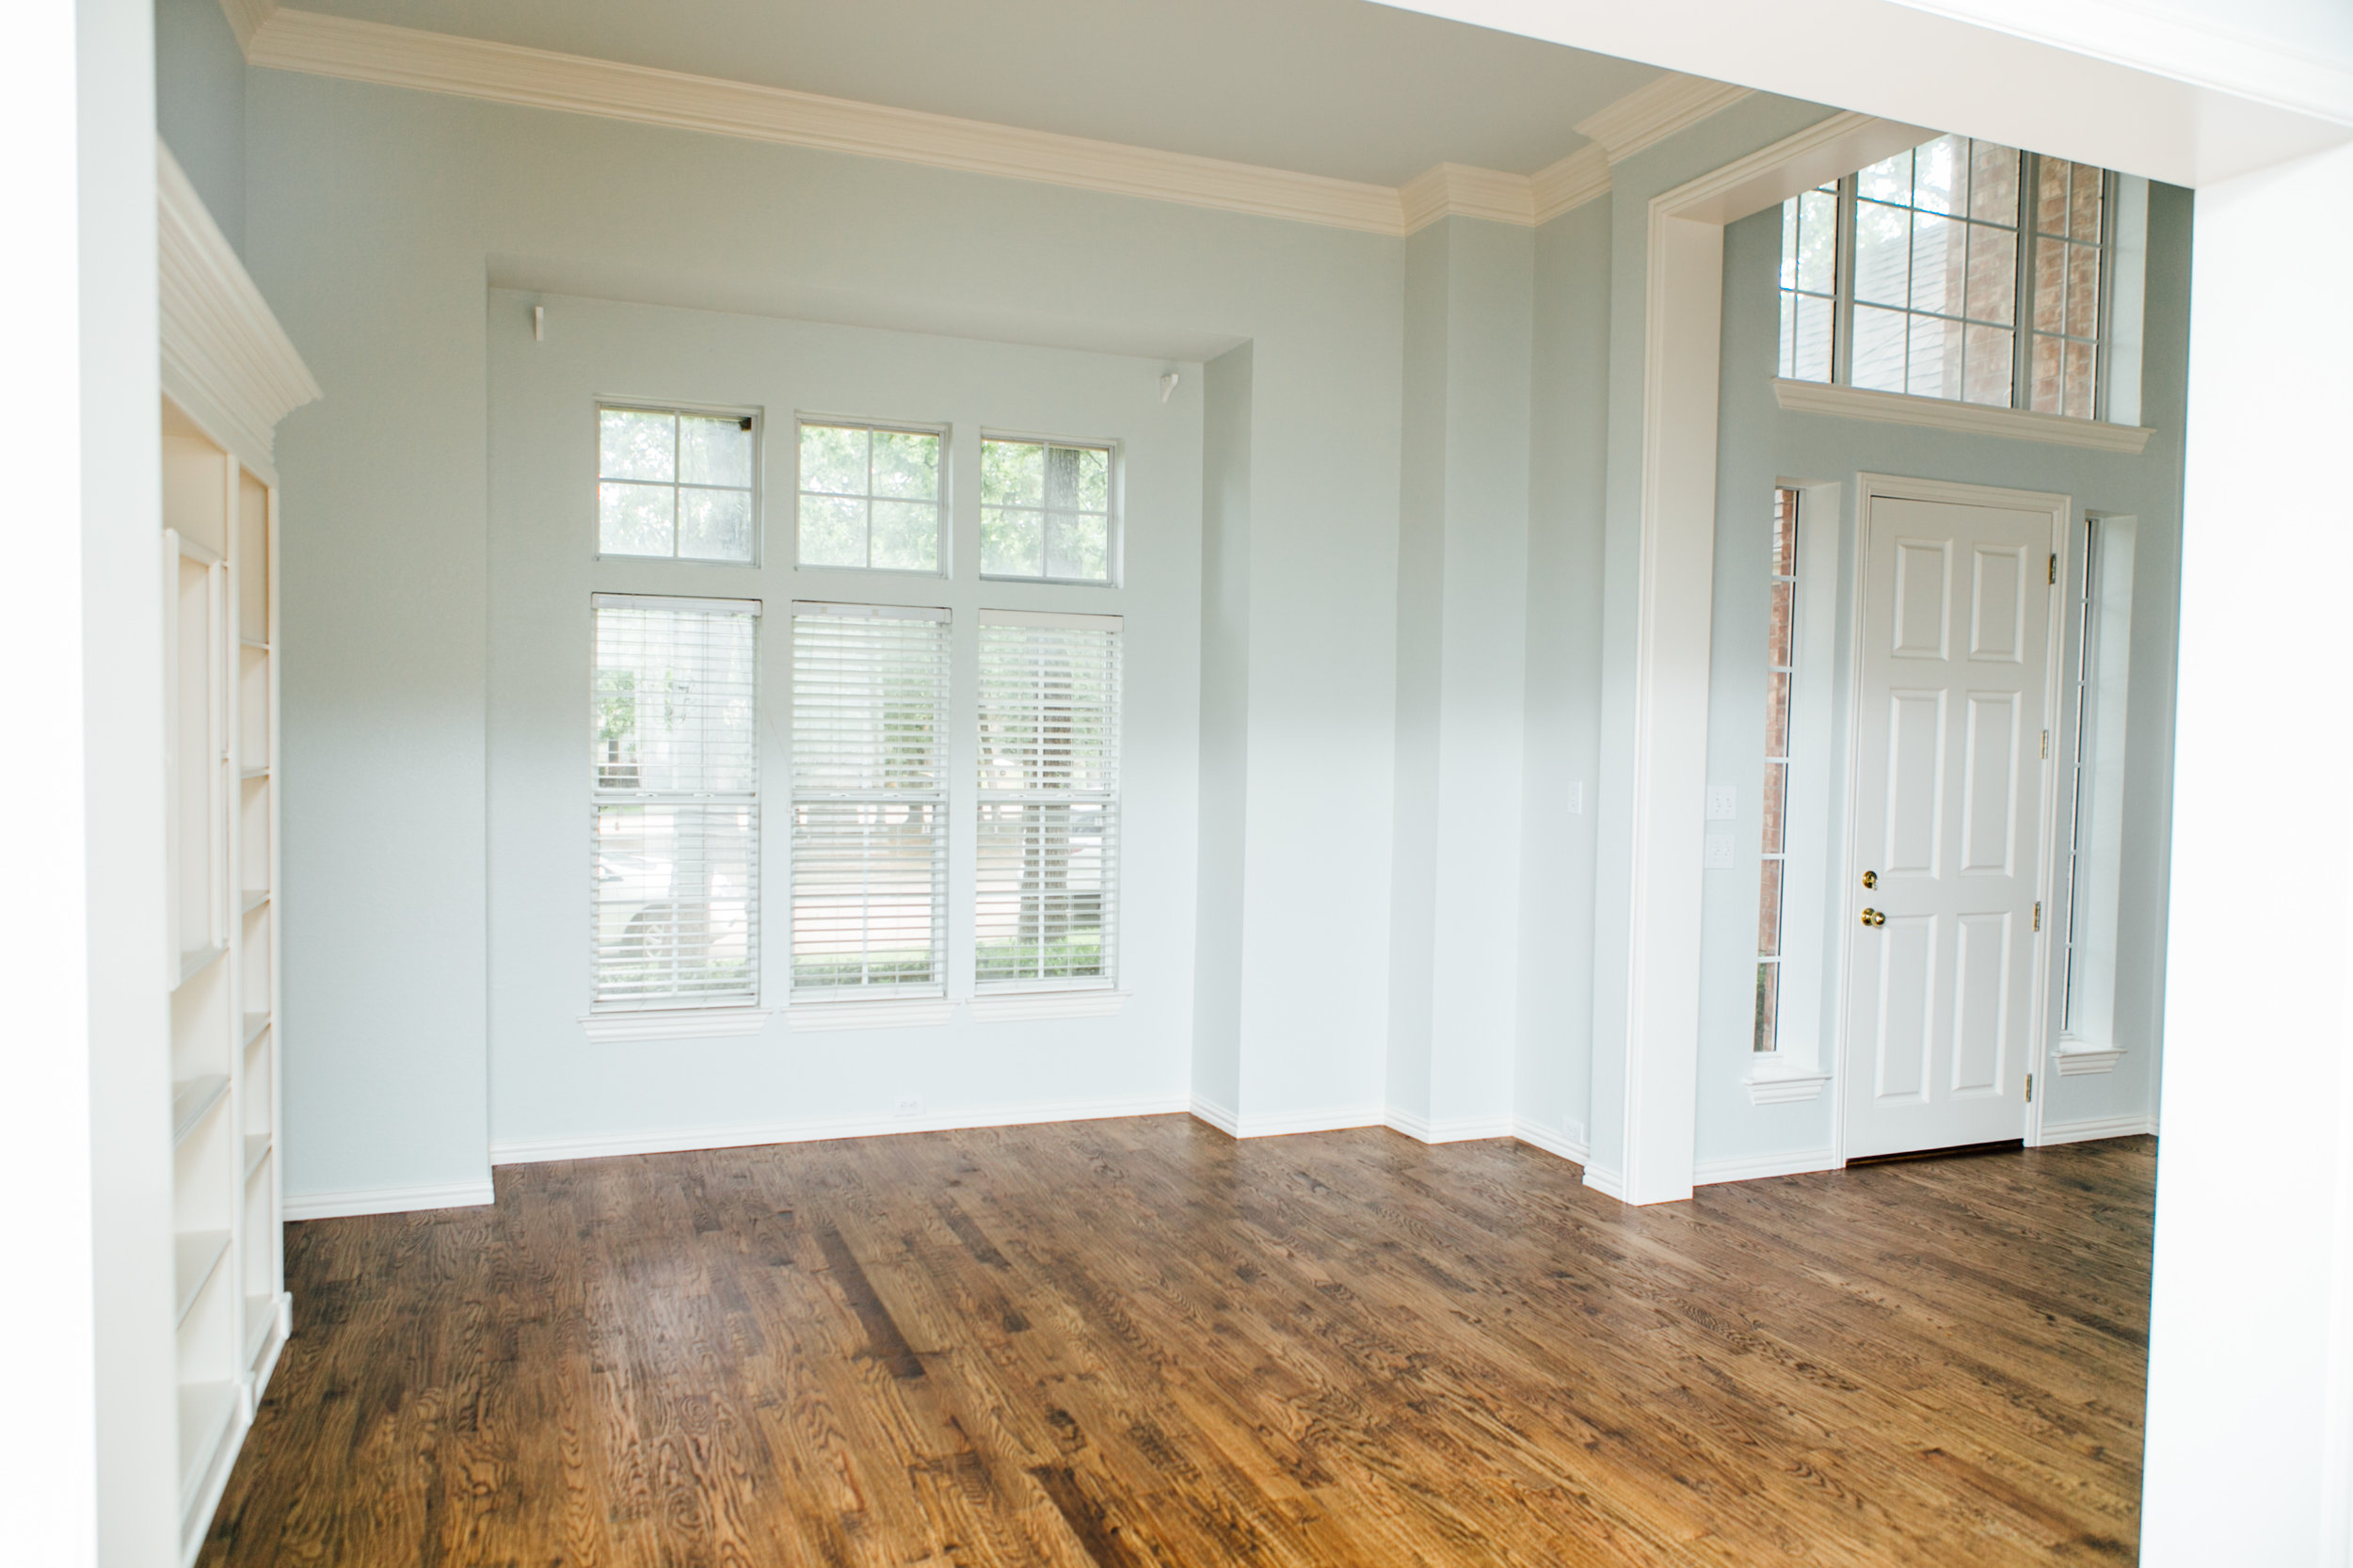 Entire Home Design and Renovation